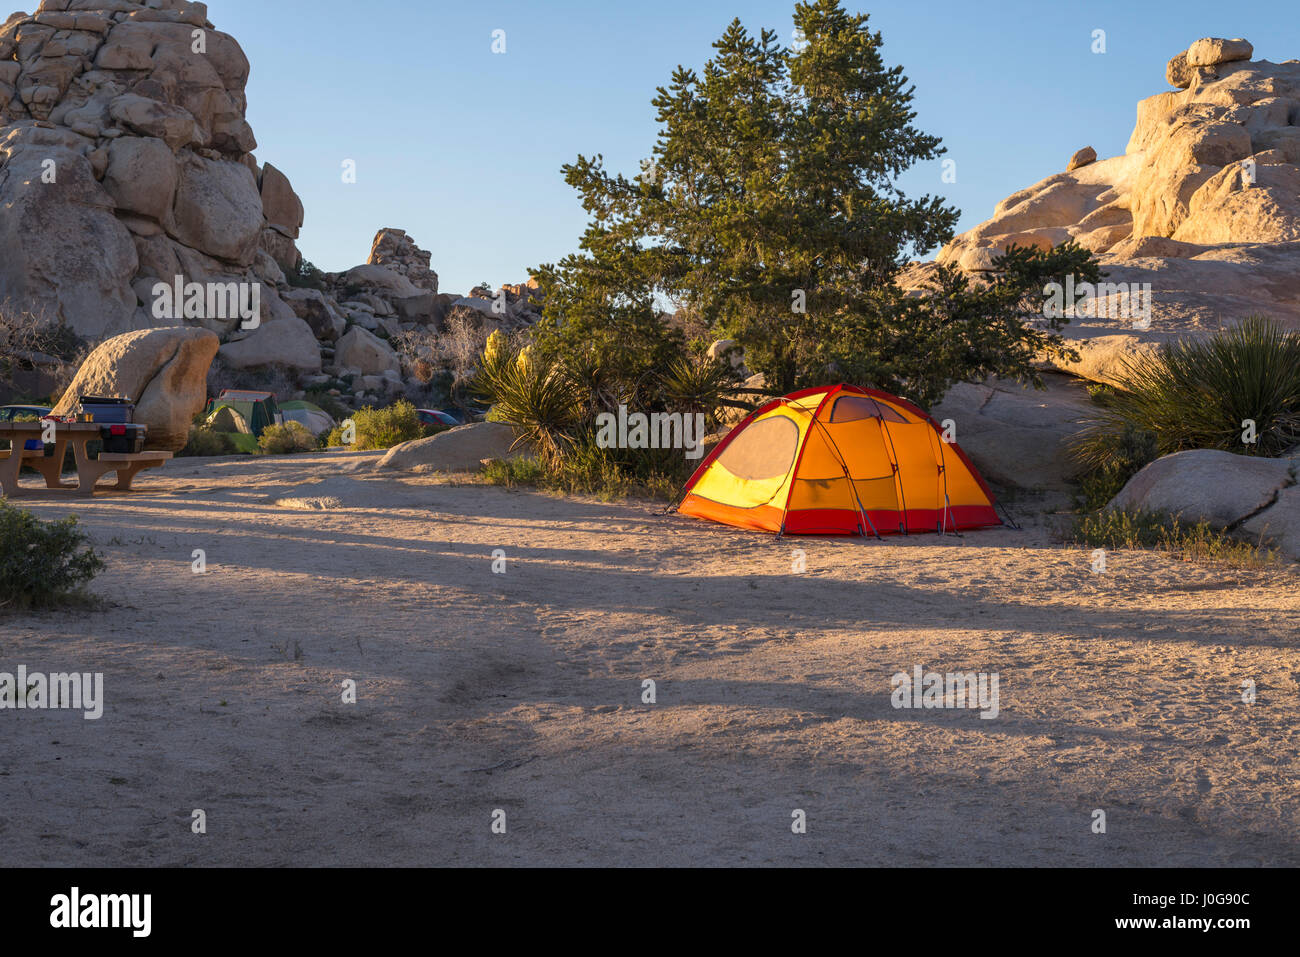 Camping tent at campground area. Joshua Tree National Park, California, USA. - Stock Image